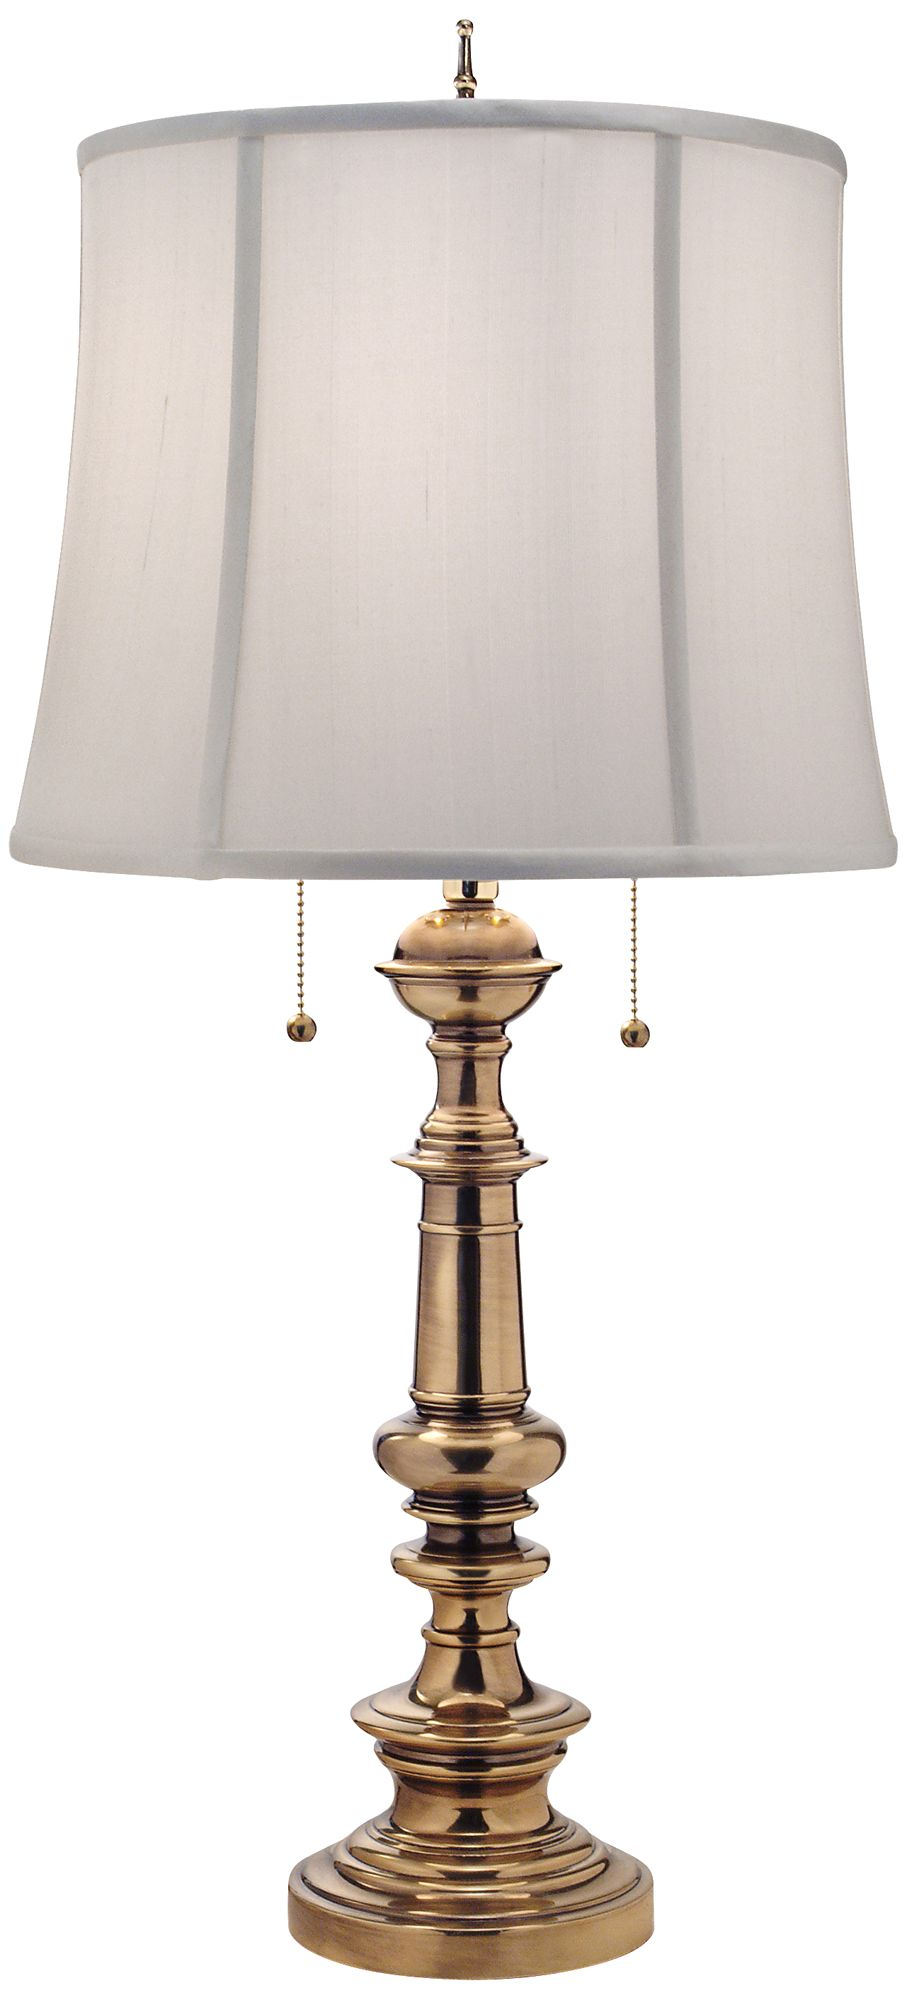 Exceptional Stiffel Burnished Brass Double Pull Chain Table Lamp